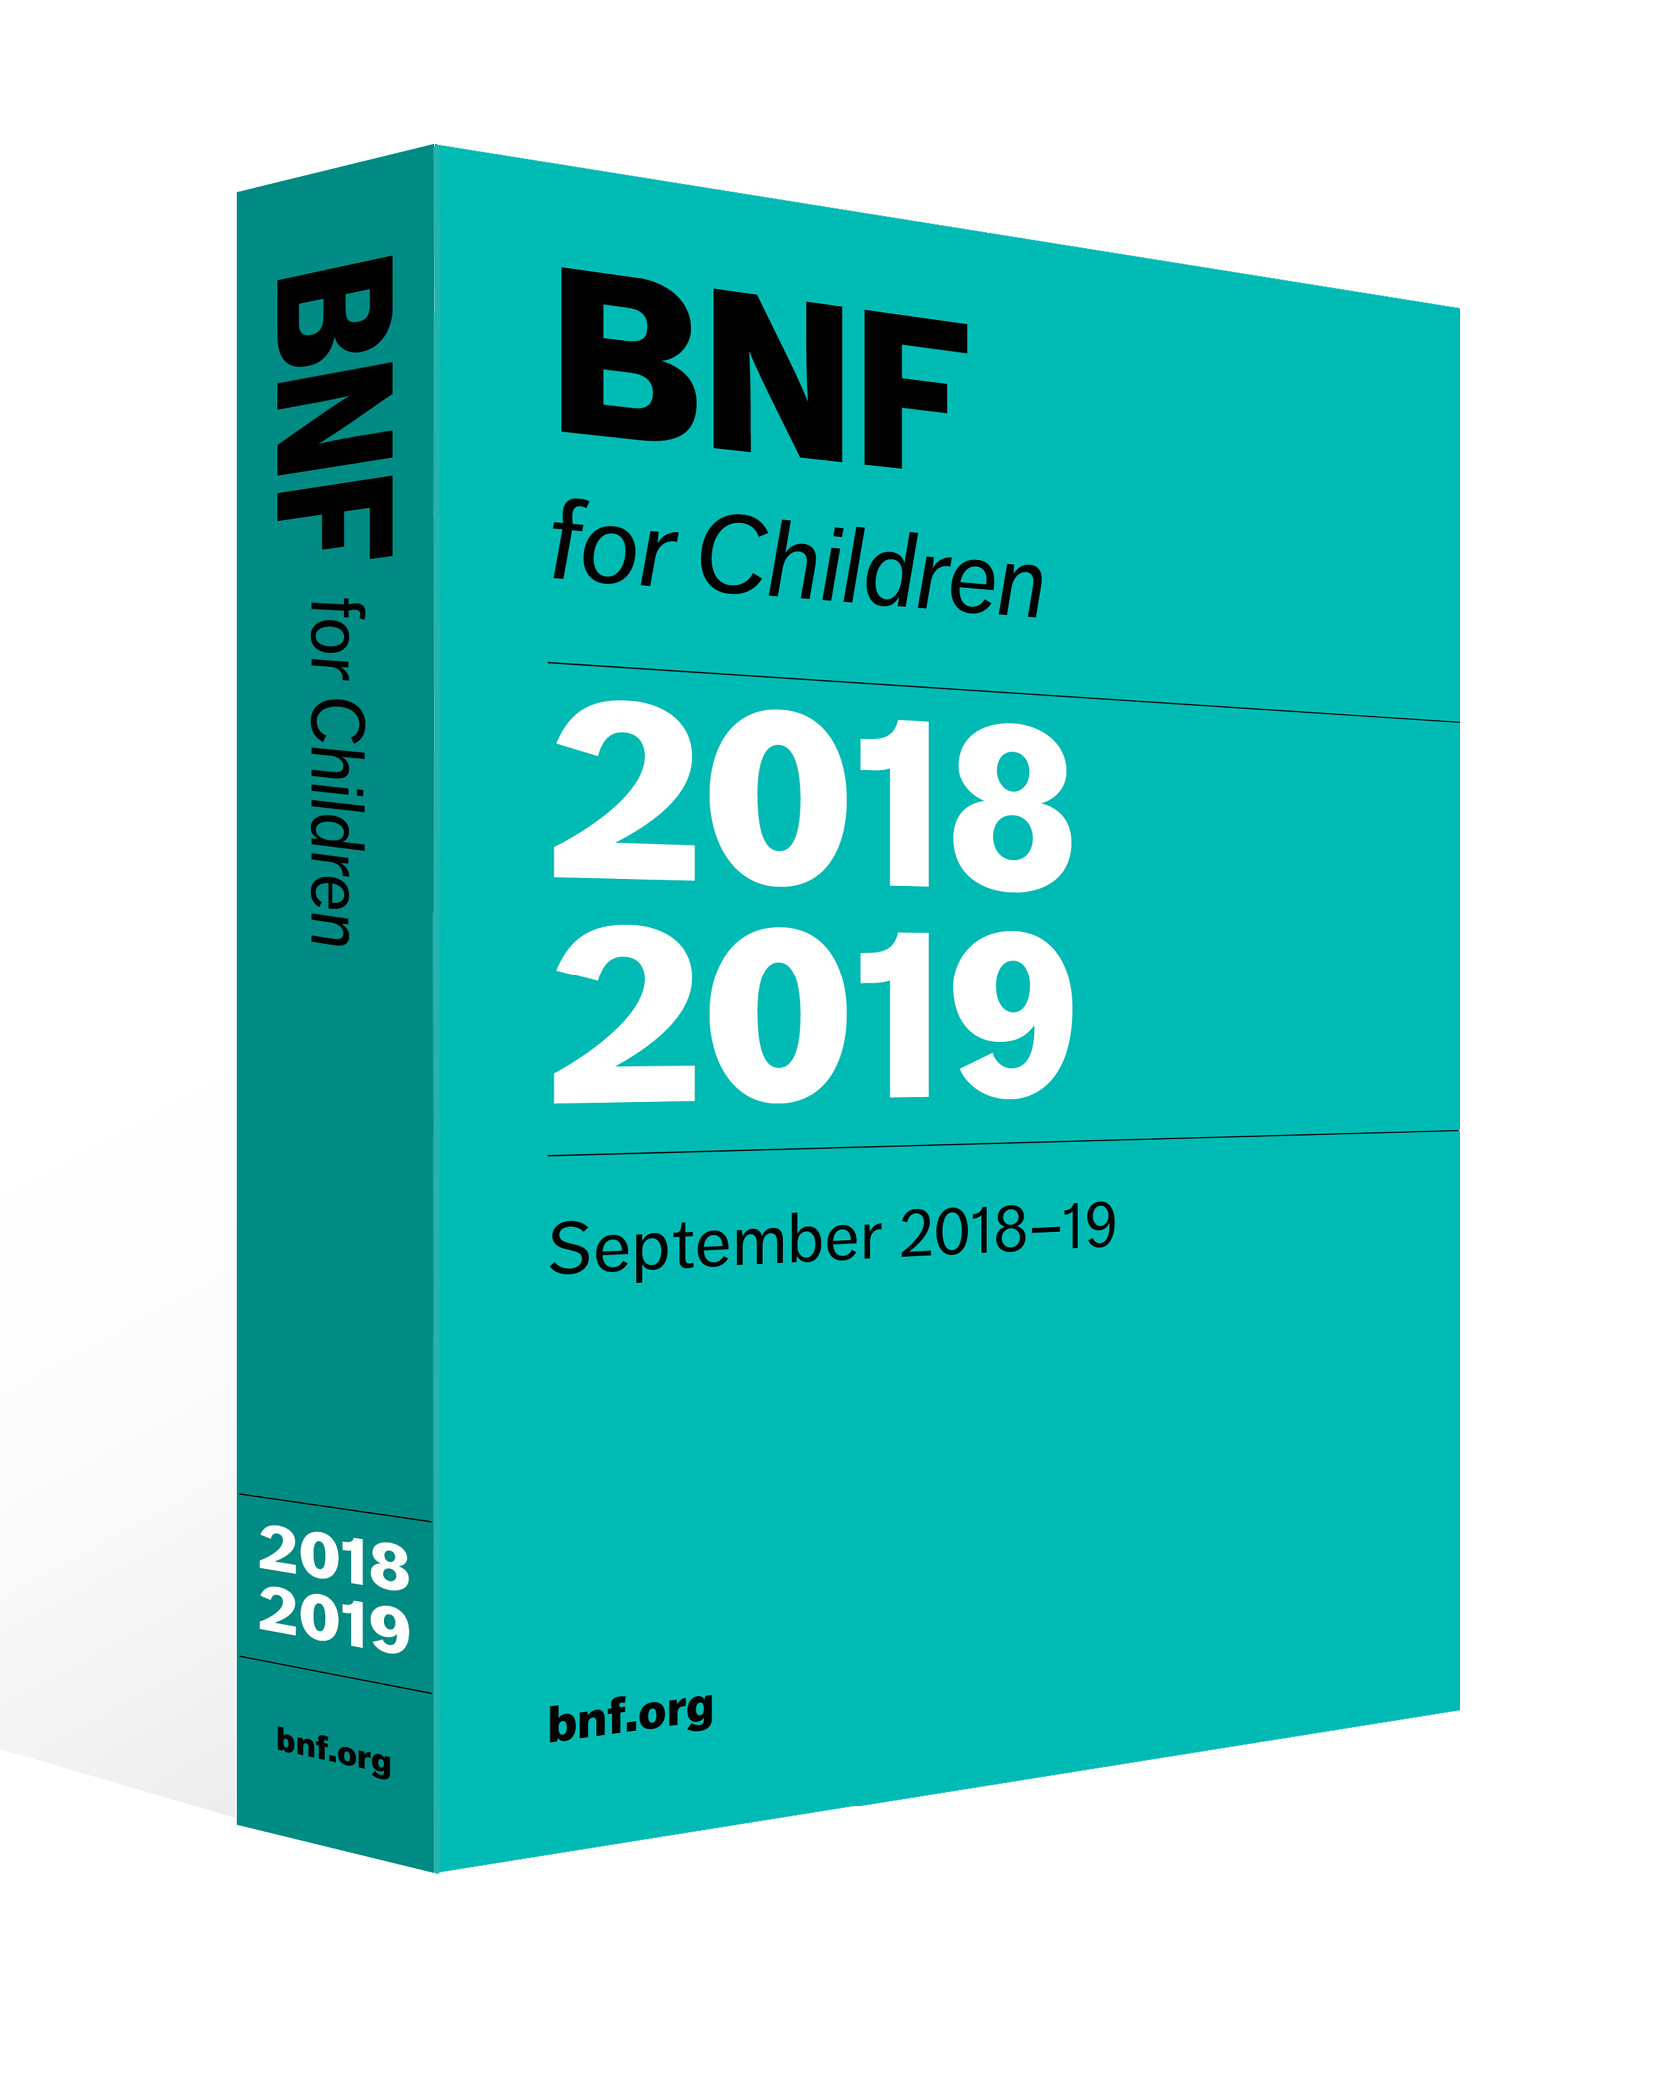 BNF for Children 2018-2019